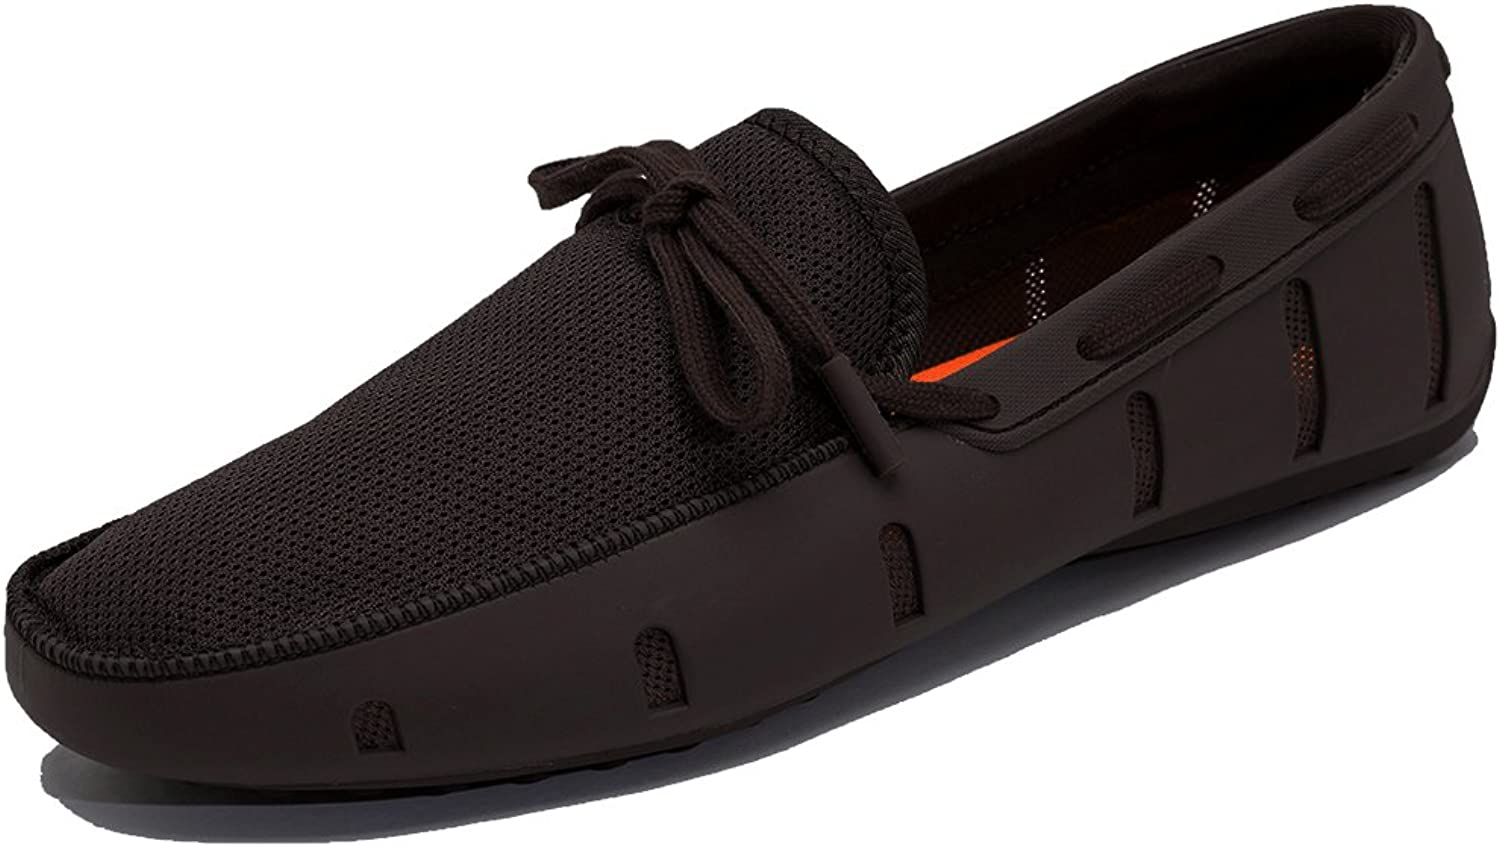 Dreamcity Men's Fashion Casual Boat shoes Breathable Slip on shoes